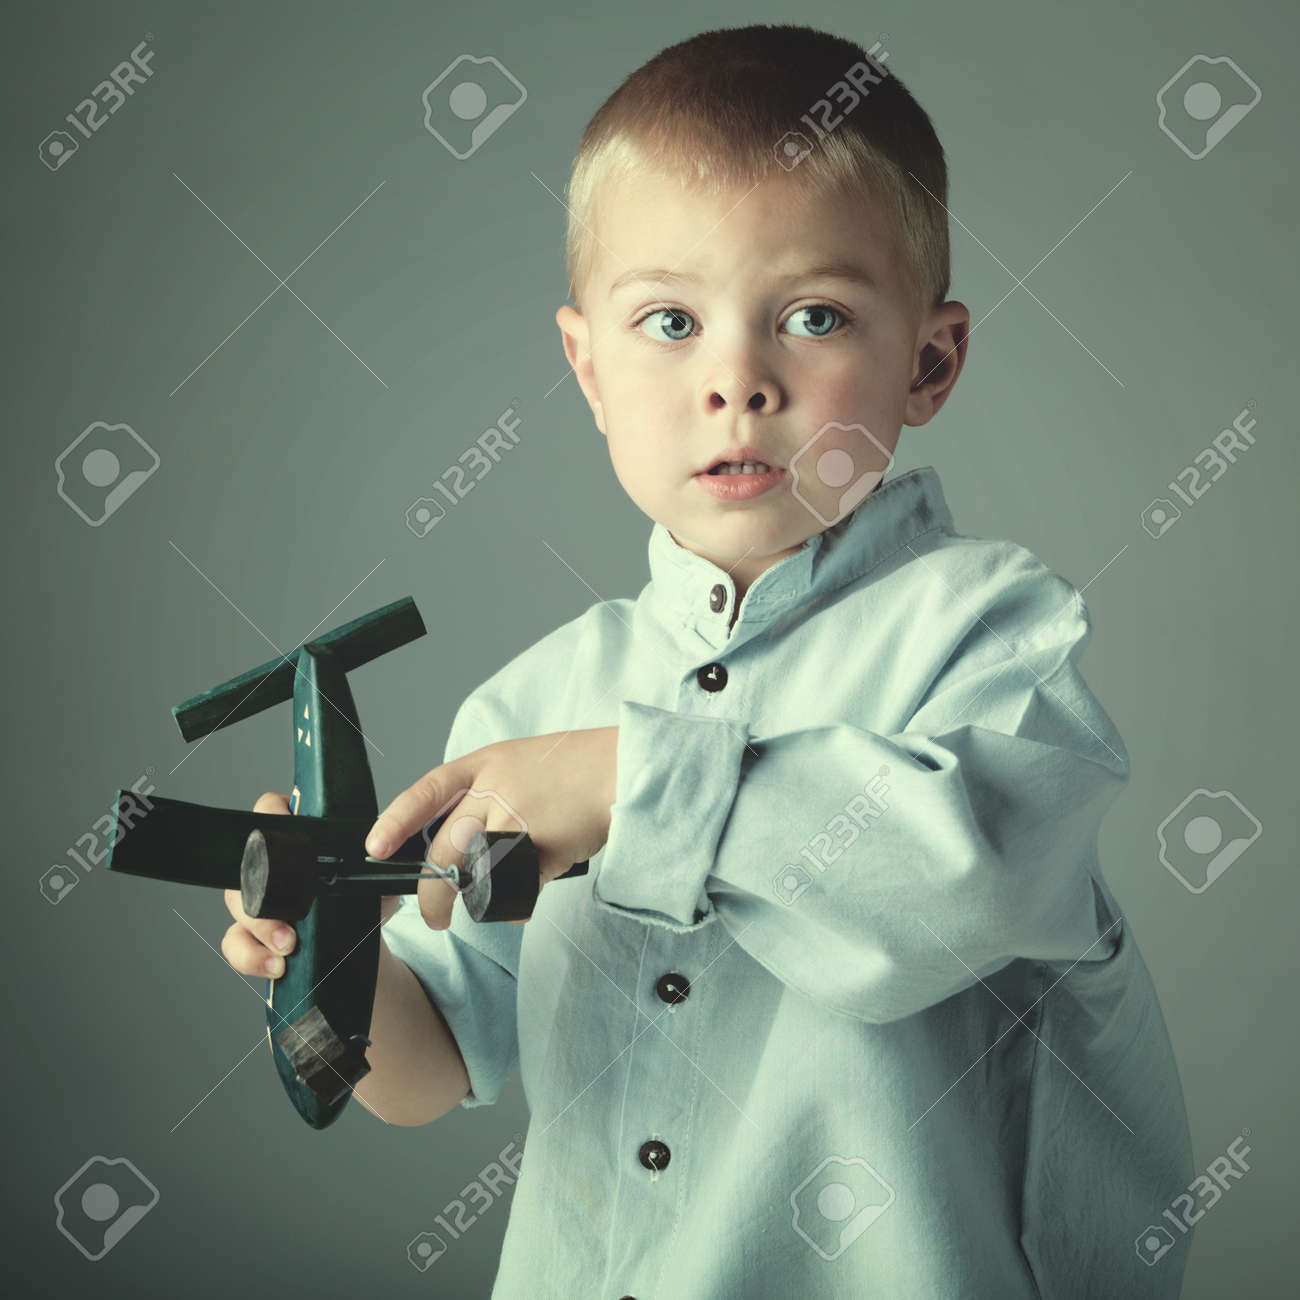 young 3 year old boy wearing blue shirt playing with wooden toy airplane in his hand on blue studio background Stock Photo - 14683811